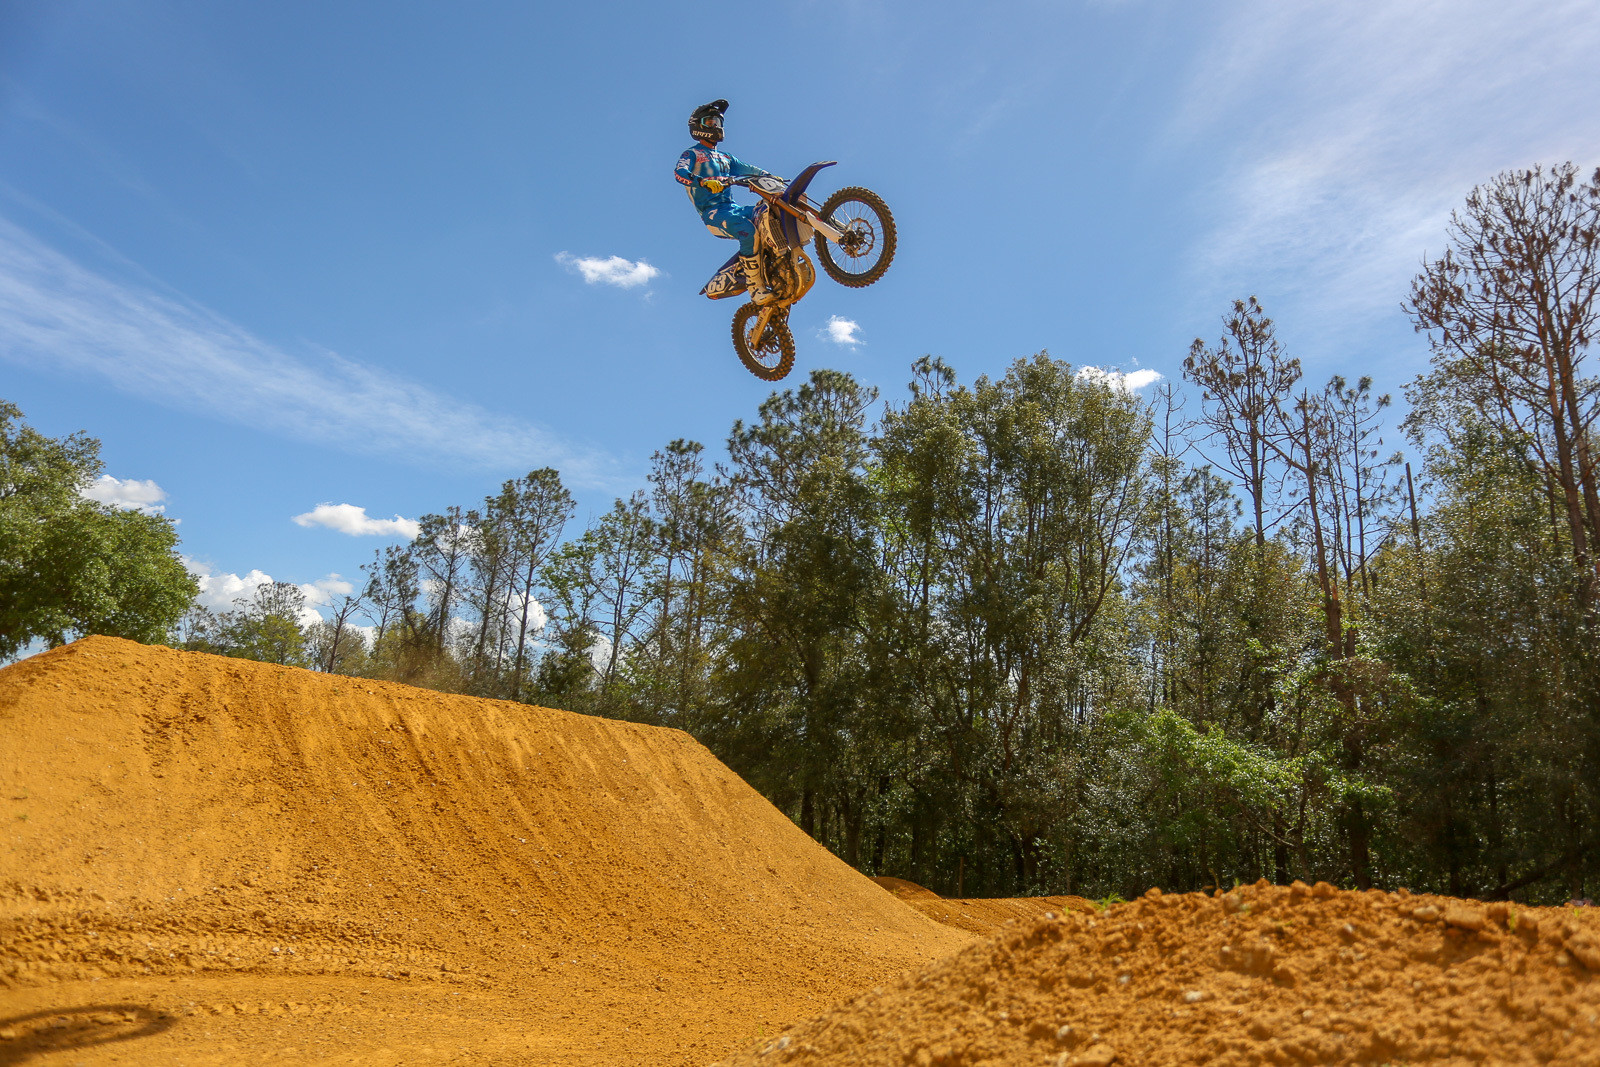 Hayden Mellross was putting in long motos while we were there.